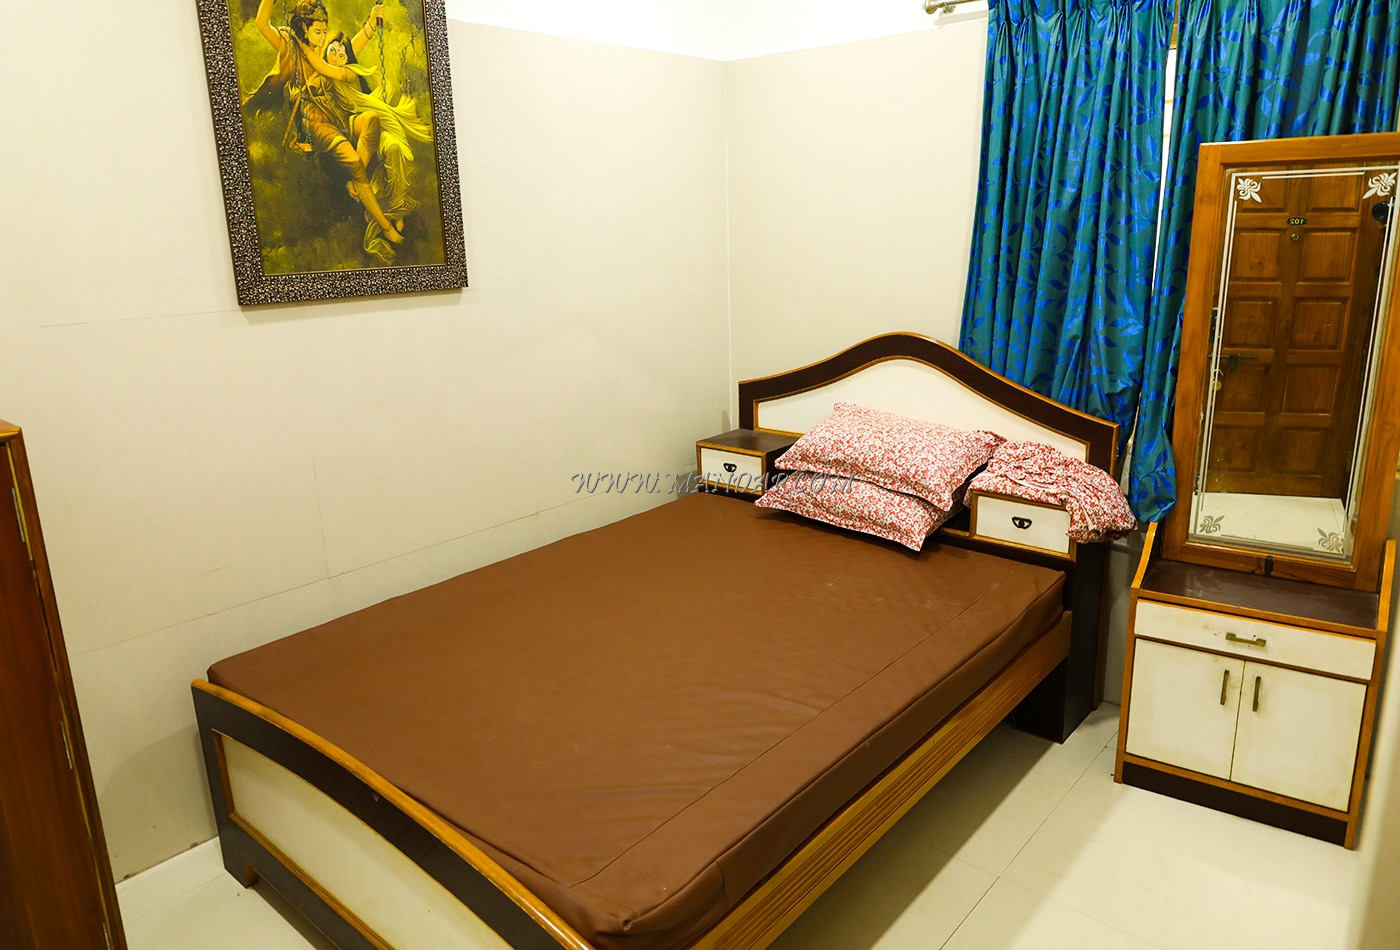 Find the availability of the VG MAHAL (A/C) in Adambakkam, Chennai and avail special offers